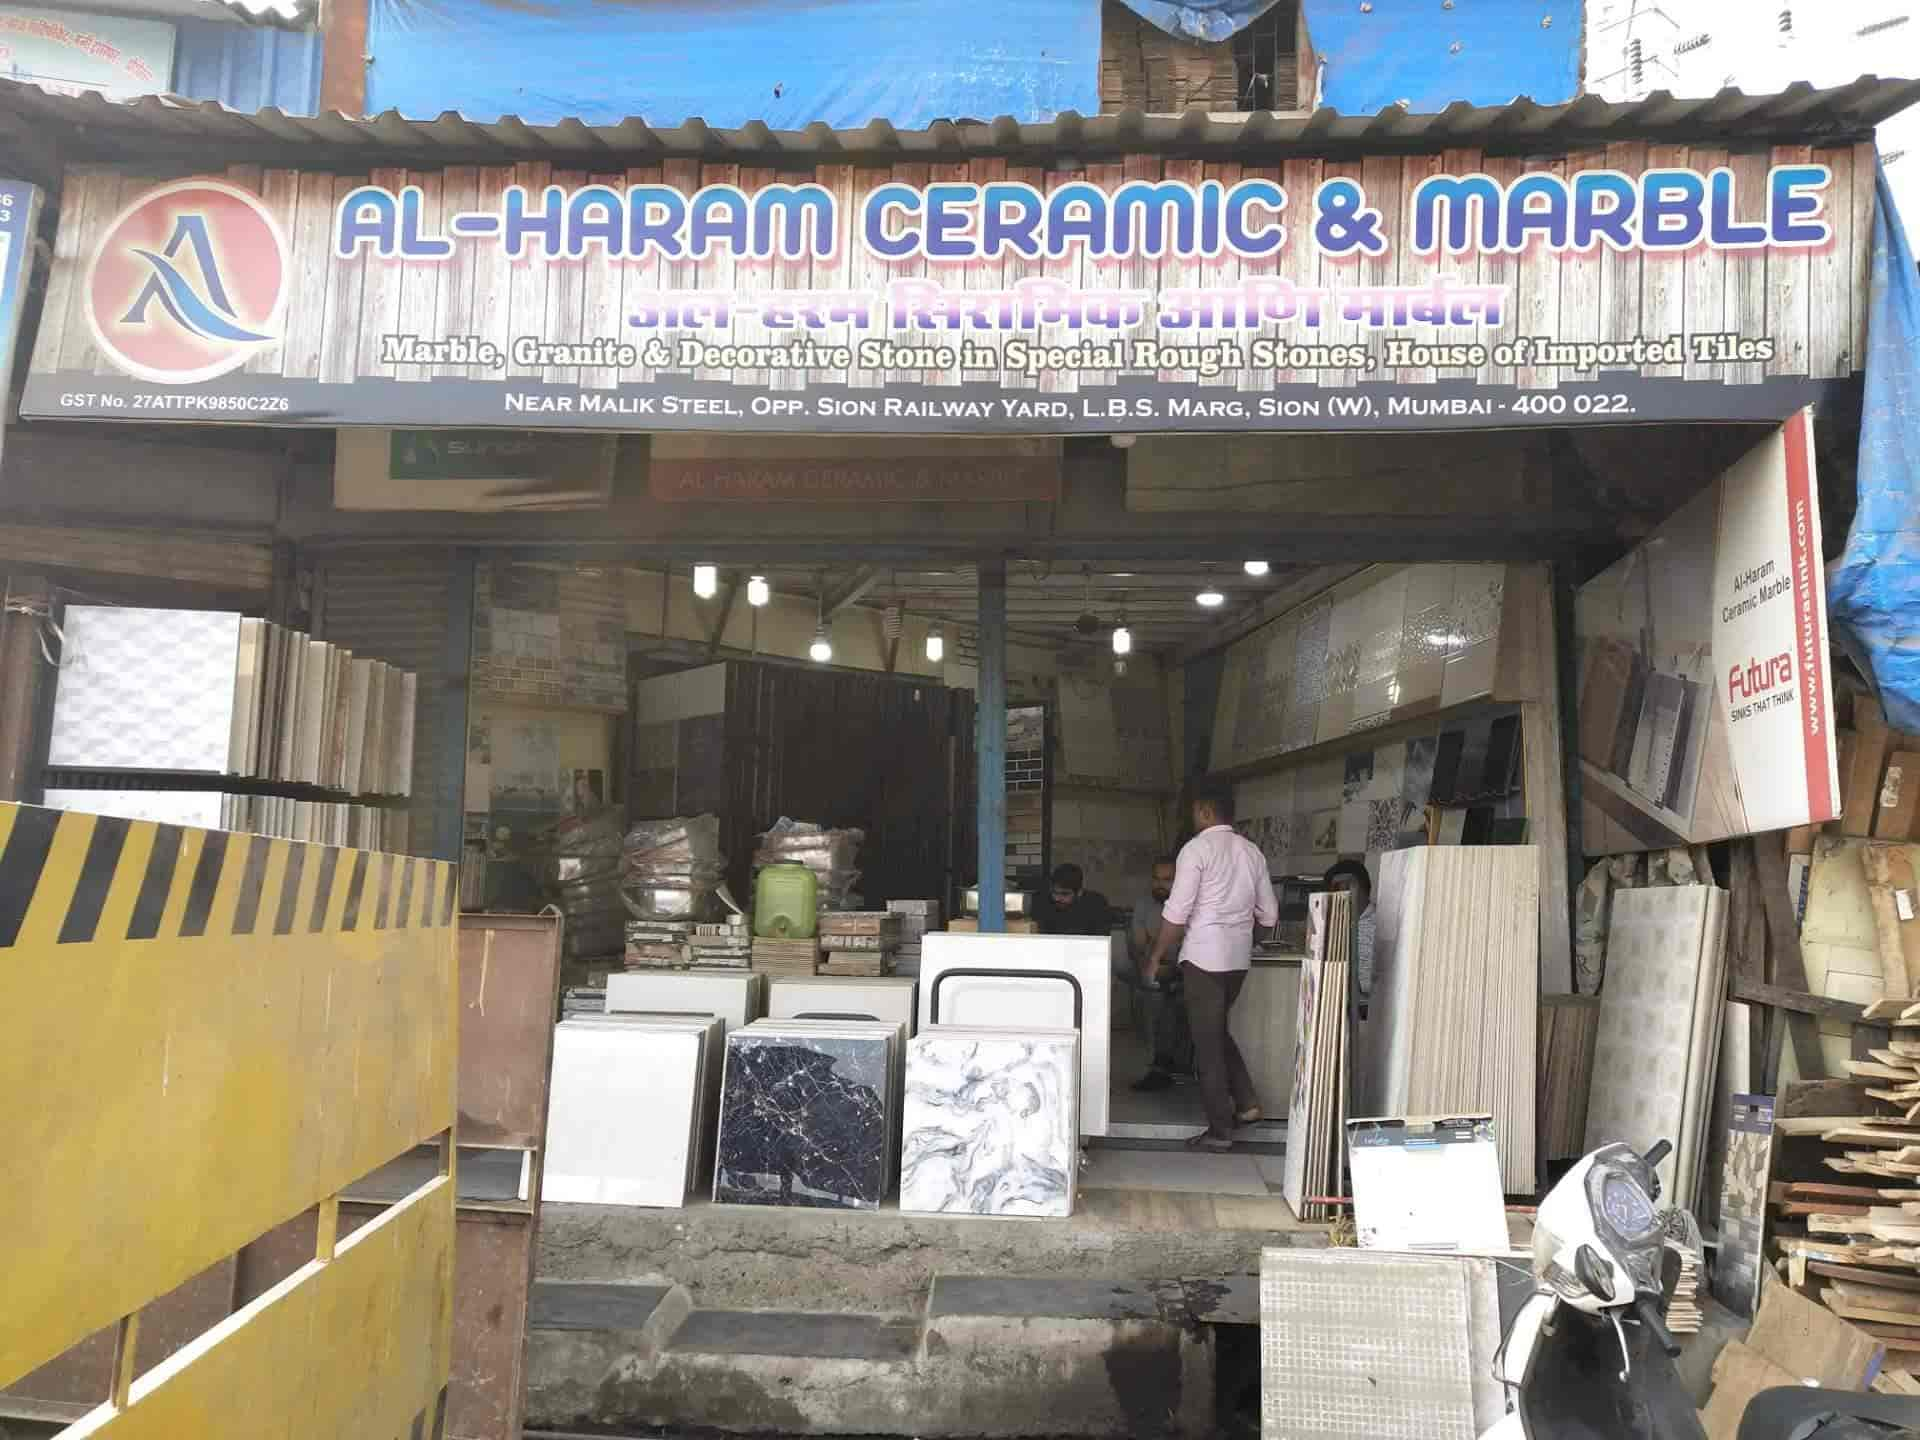 Al Haram Ceramic And Marble Photos, Sion, Mumbai- Pictures & Images